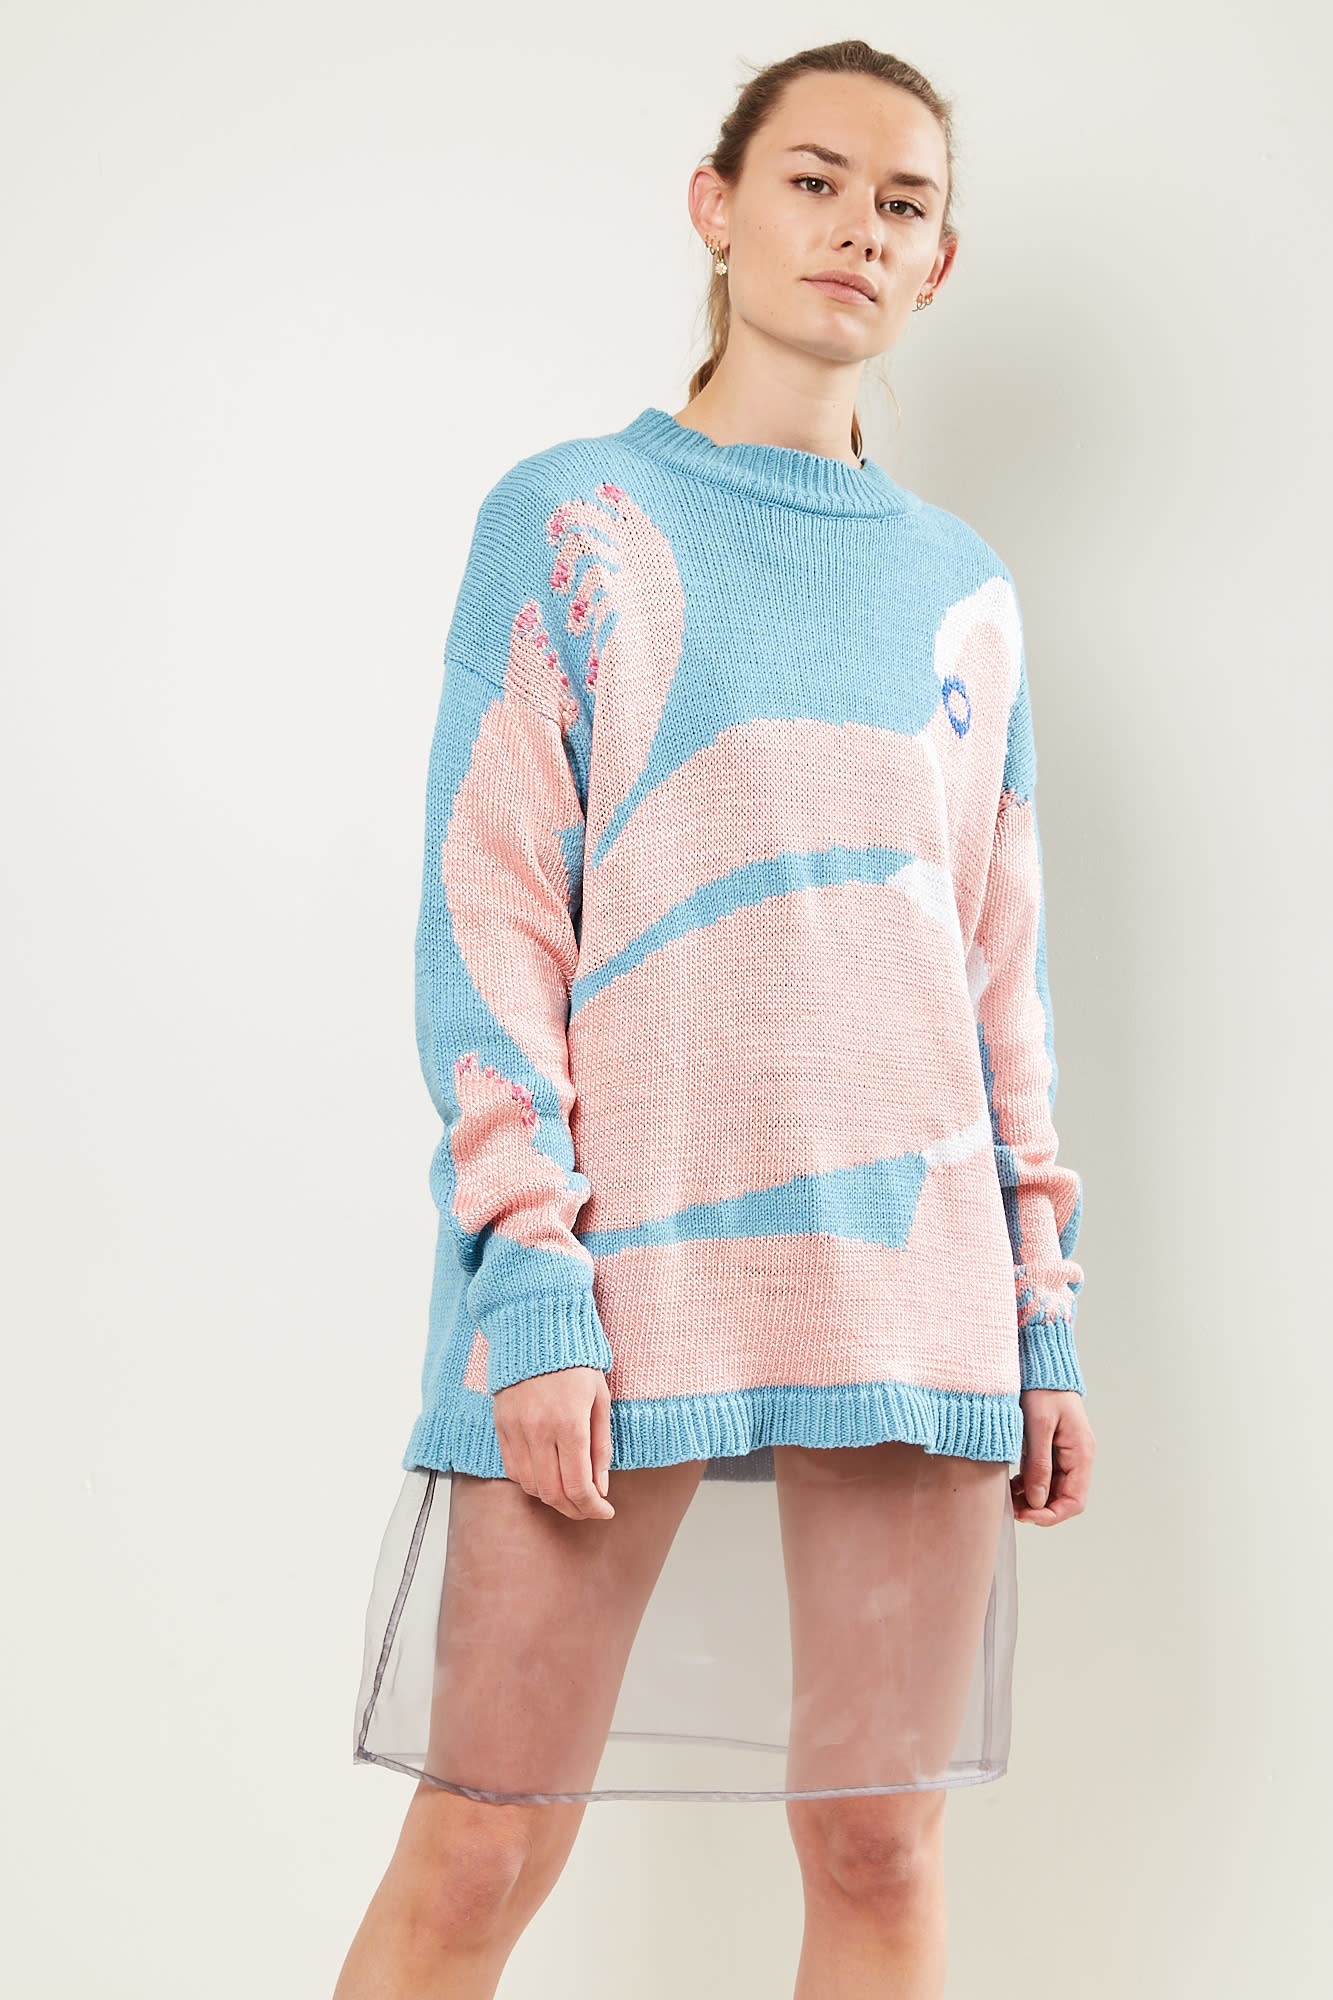 Survival of the fashionest - Amber big Vittoria's full bodies sweater light blue